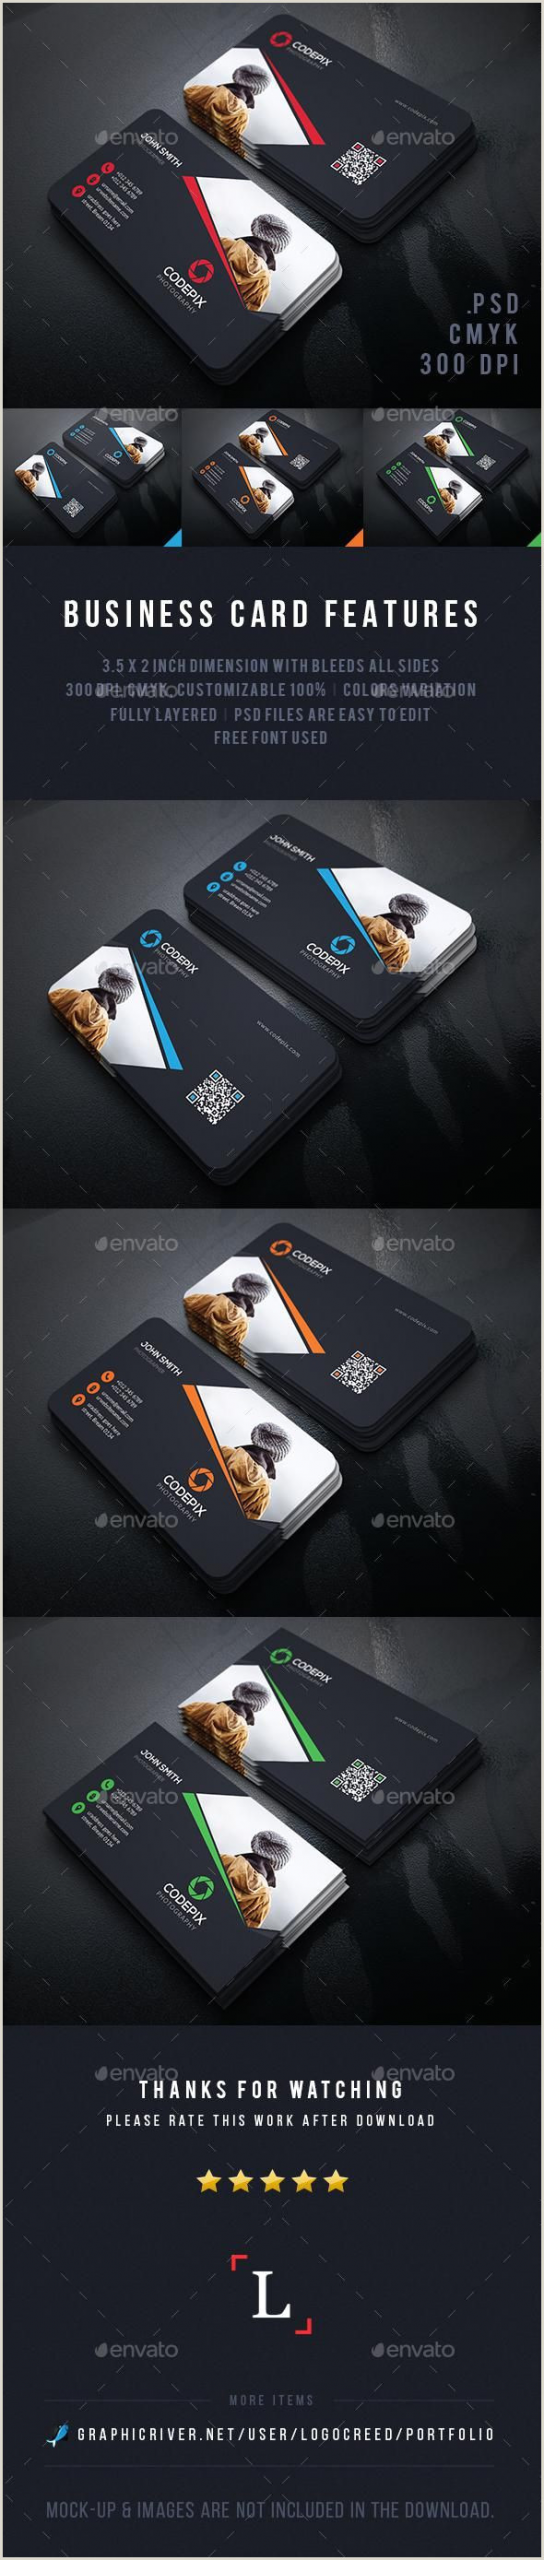 Best Photography Business Cards Elegant Graphy Business Card